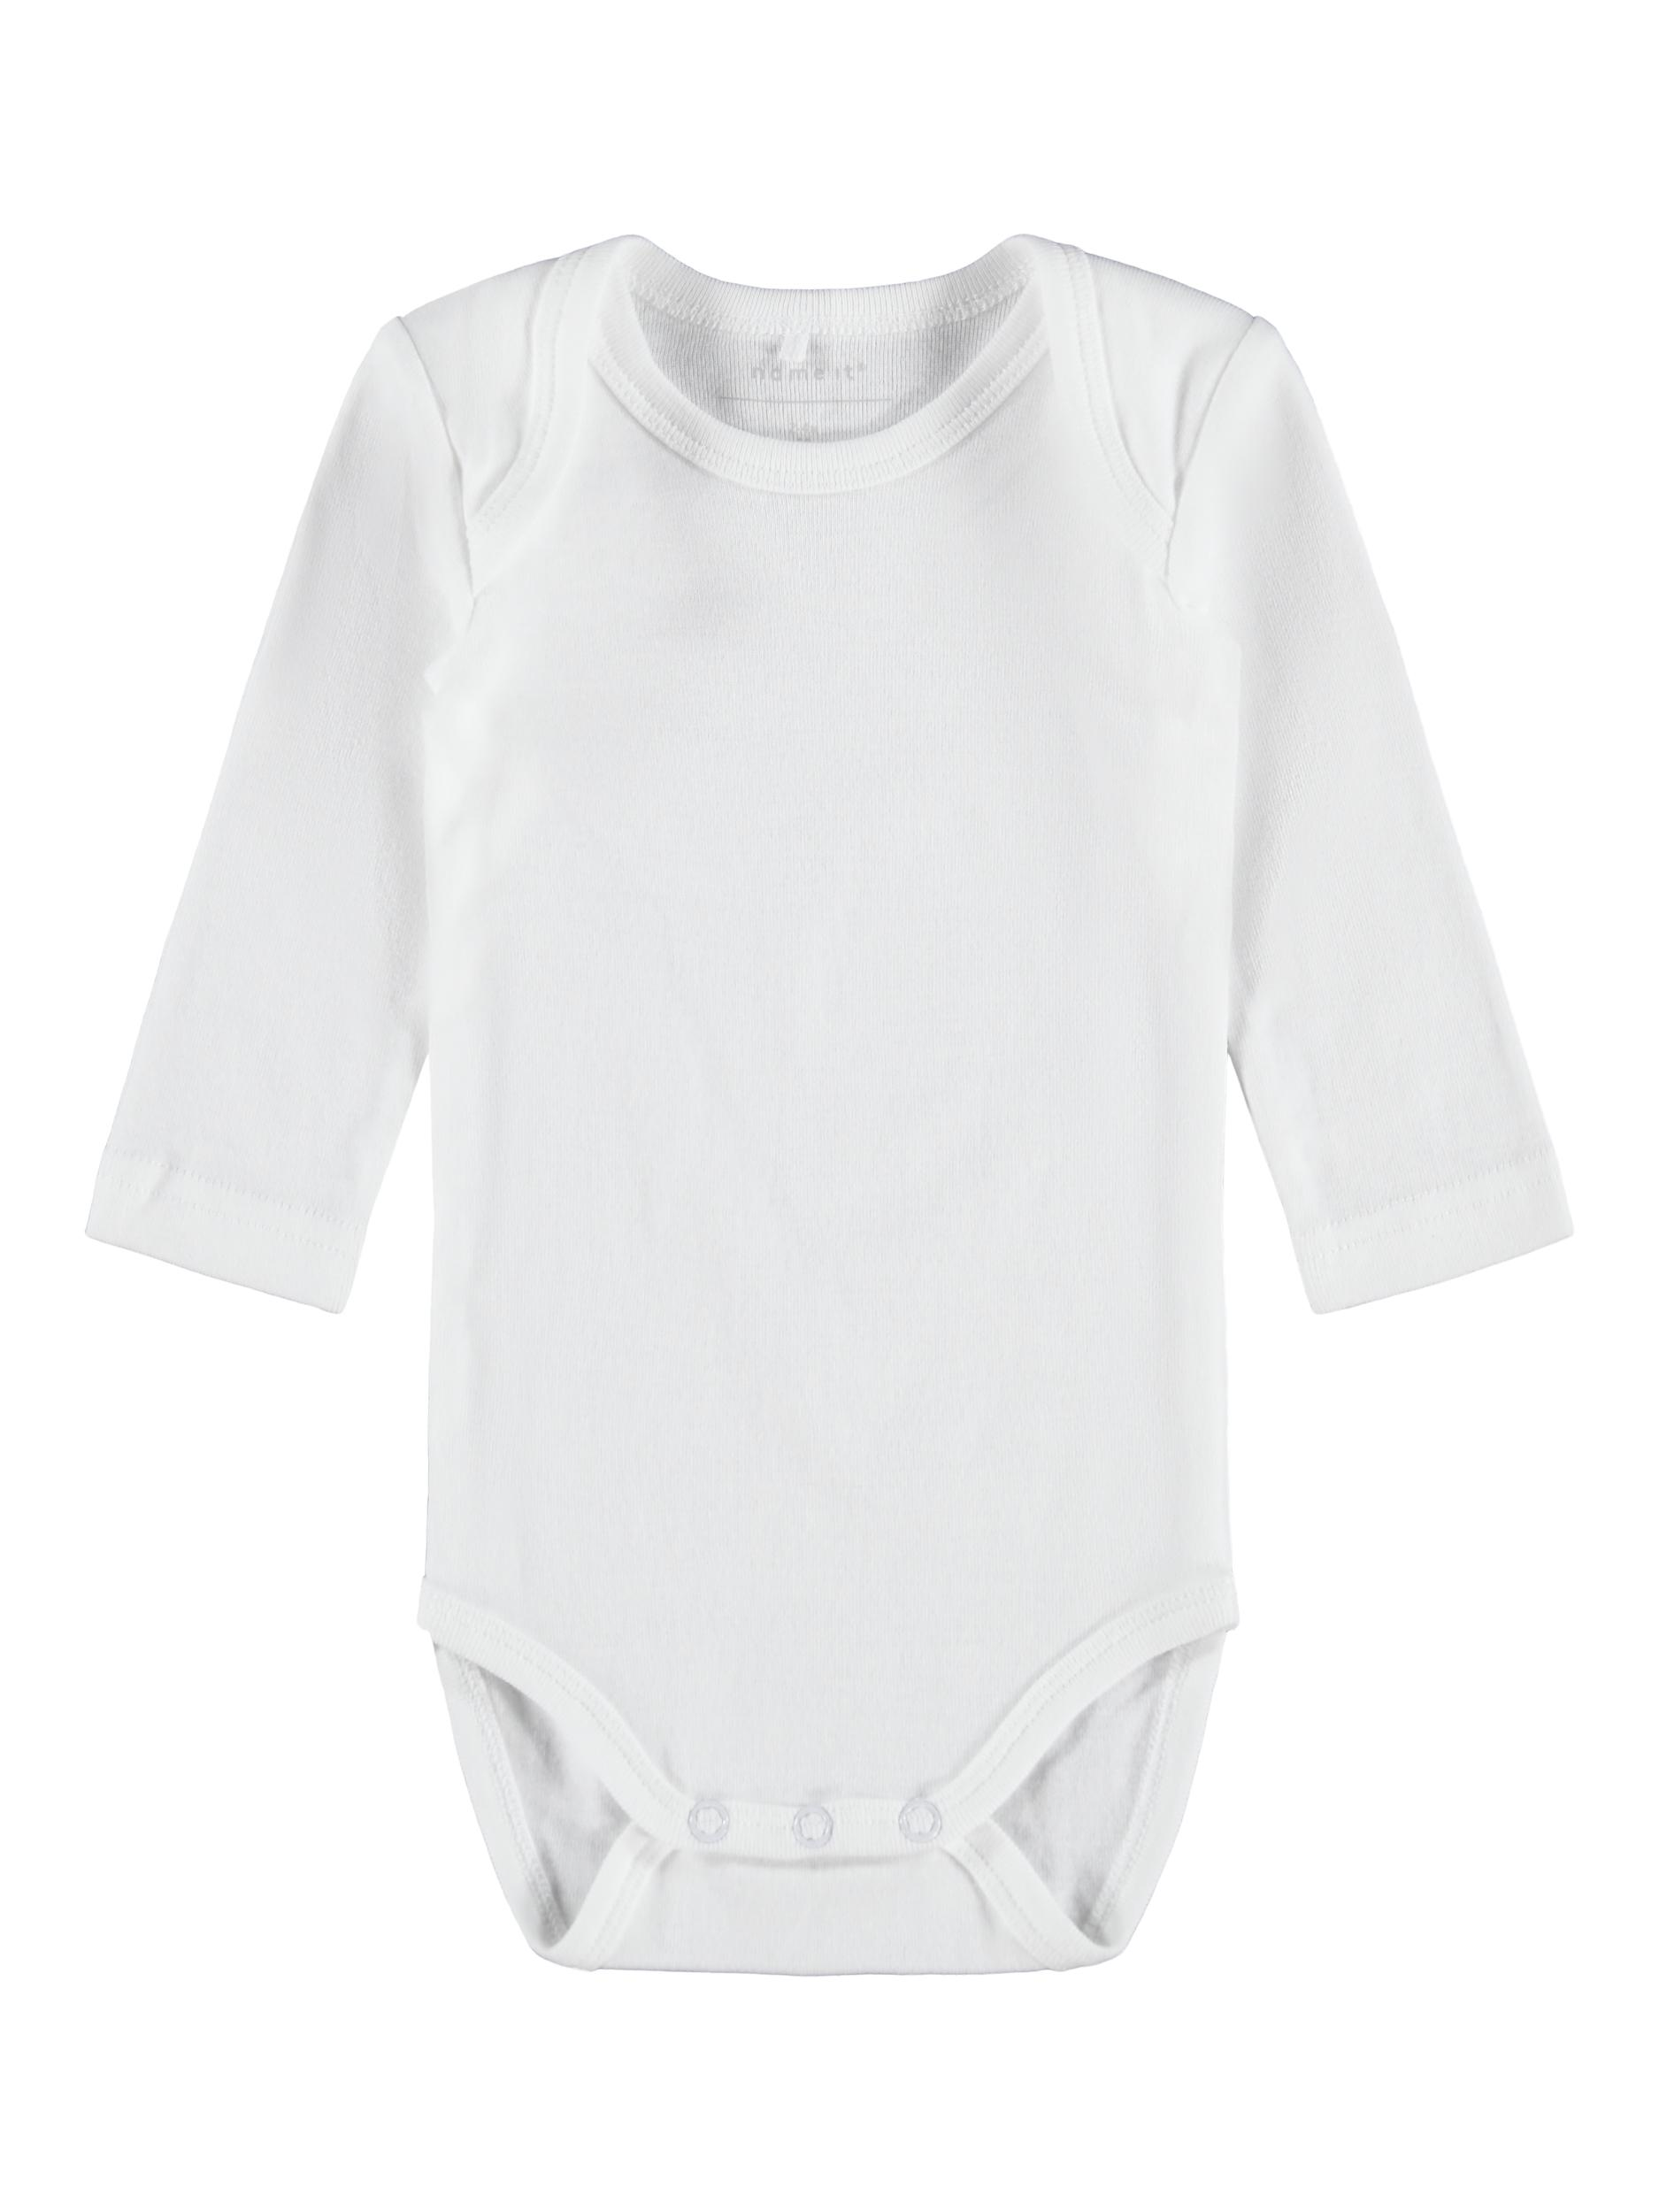 Baby Organic Cotton Bodysuits In Gray Shades